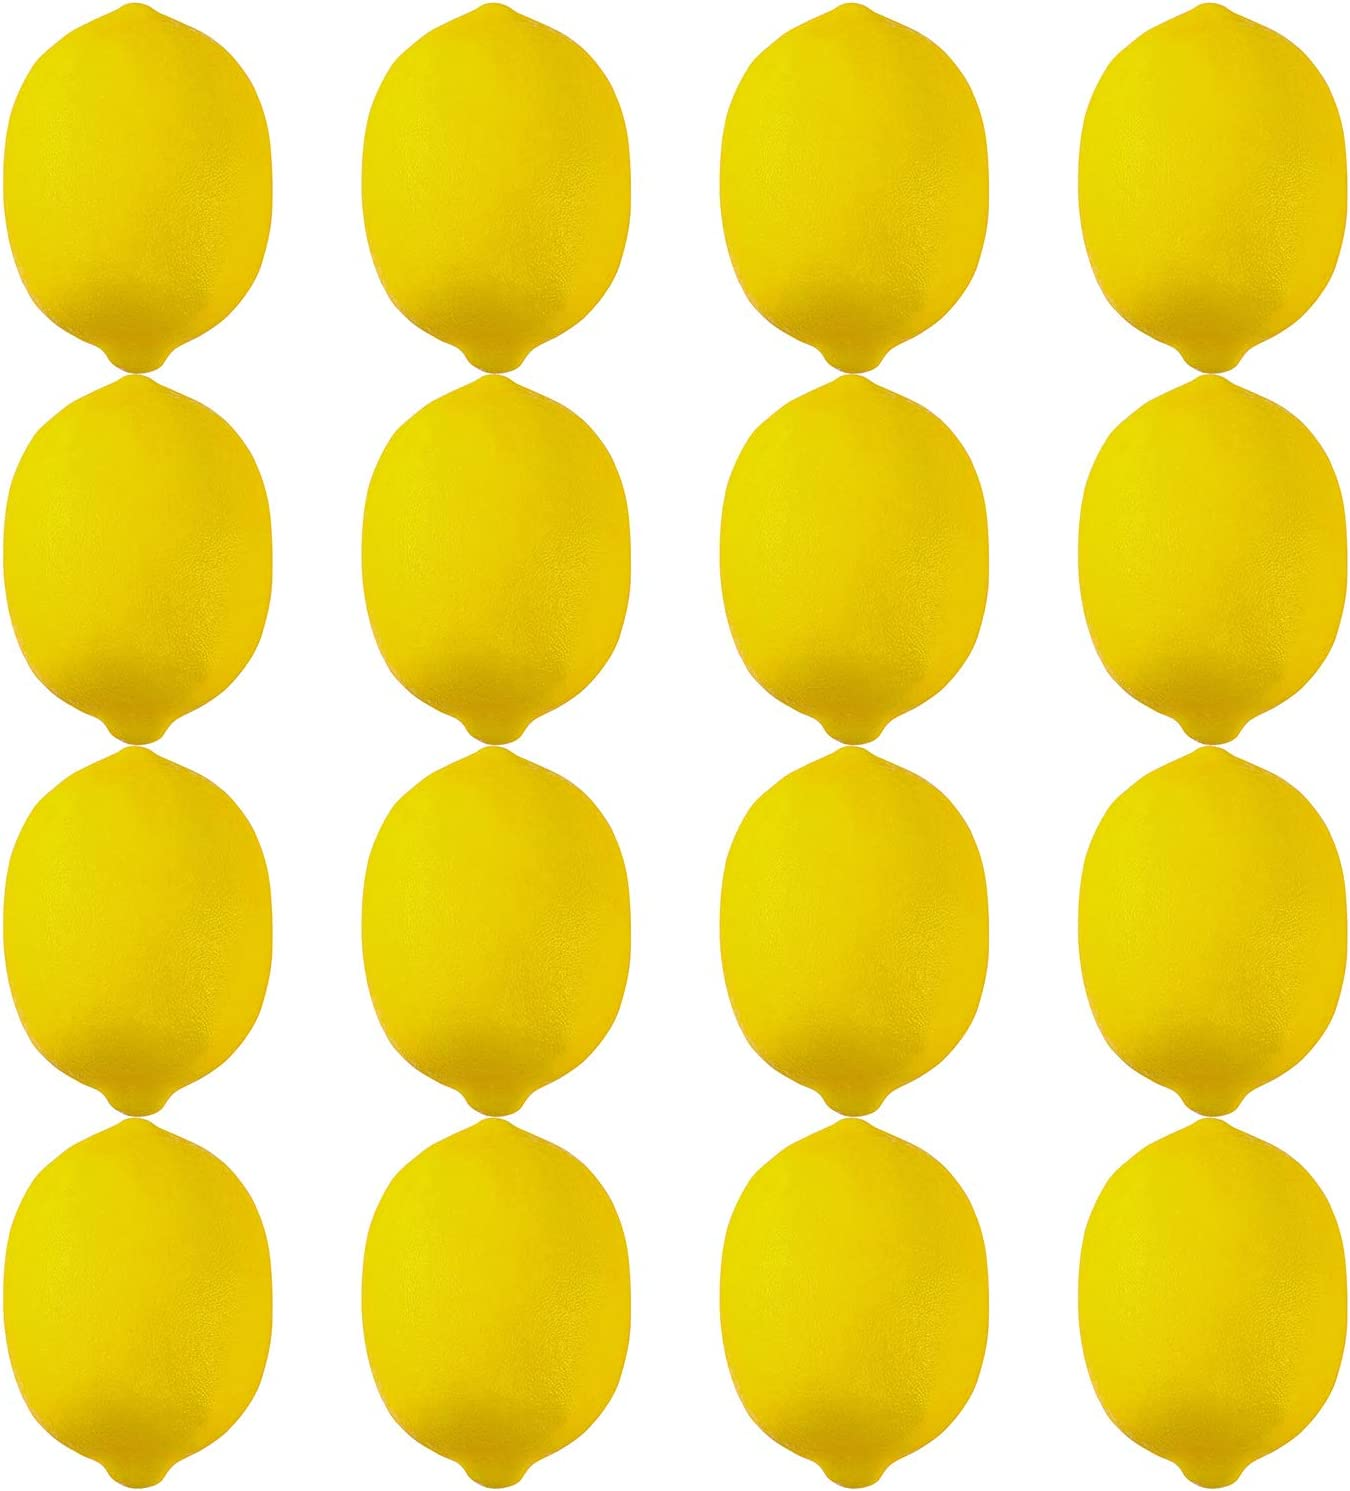 Elcoho 16 Pack Large Artificial Lemons Lifelike Yellow Lemon Fake Lemon Fruit for Home Kitchen Party Decoration, 3.7 inches x 2.5 inches